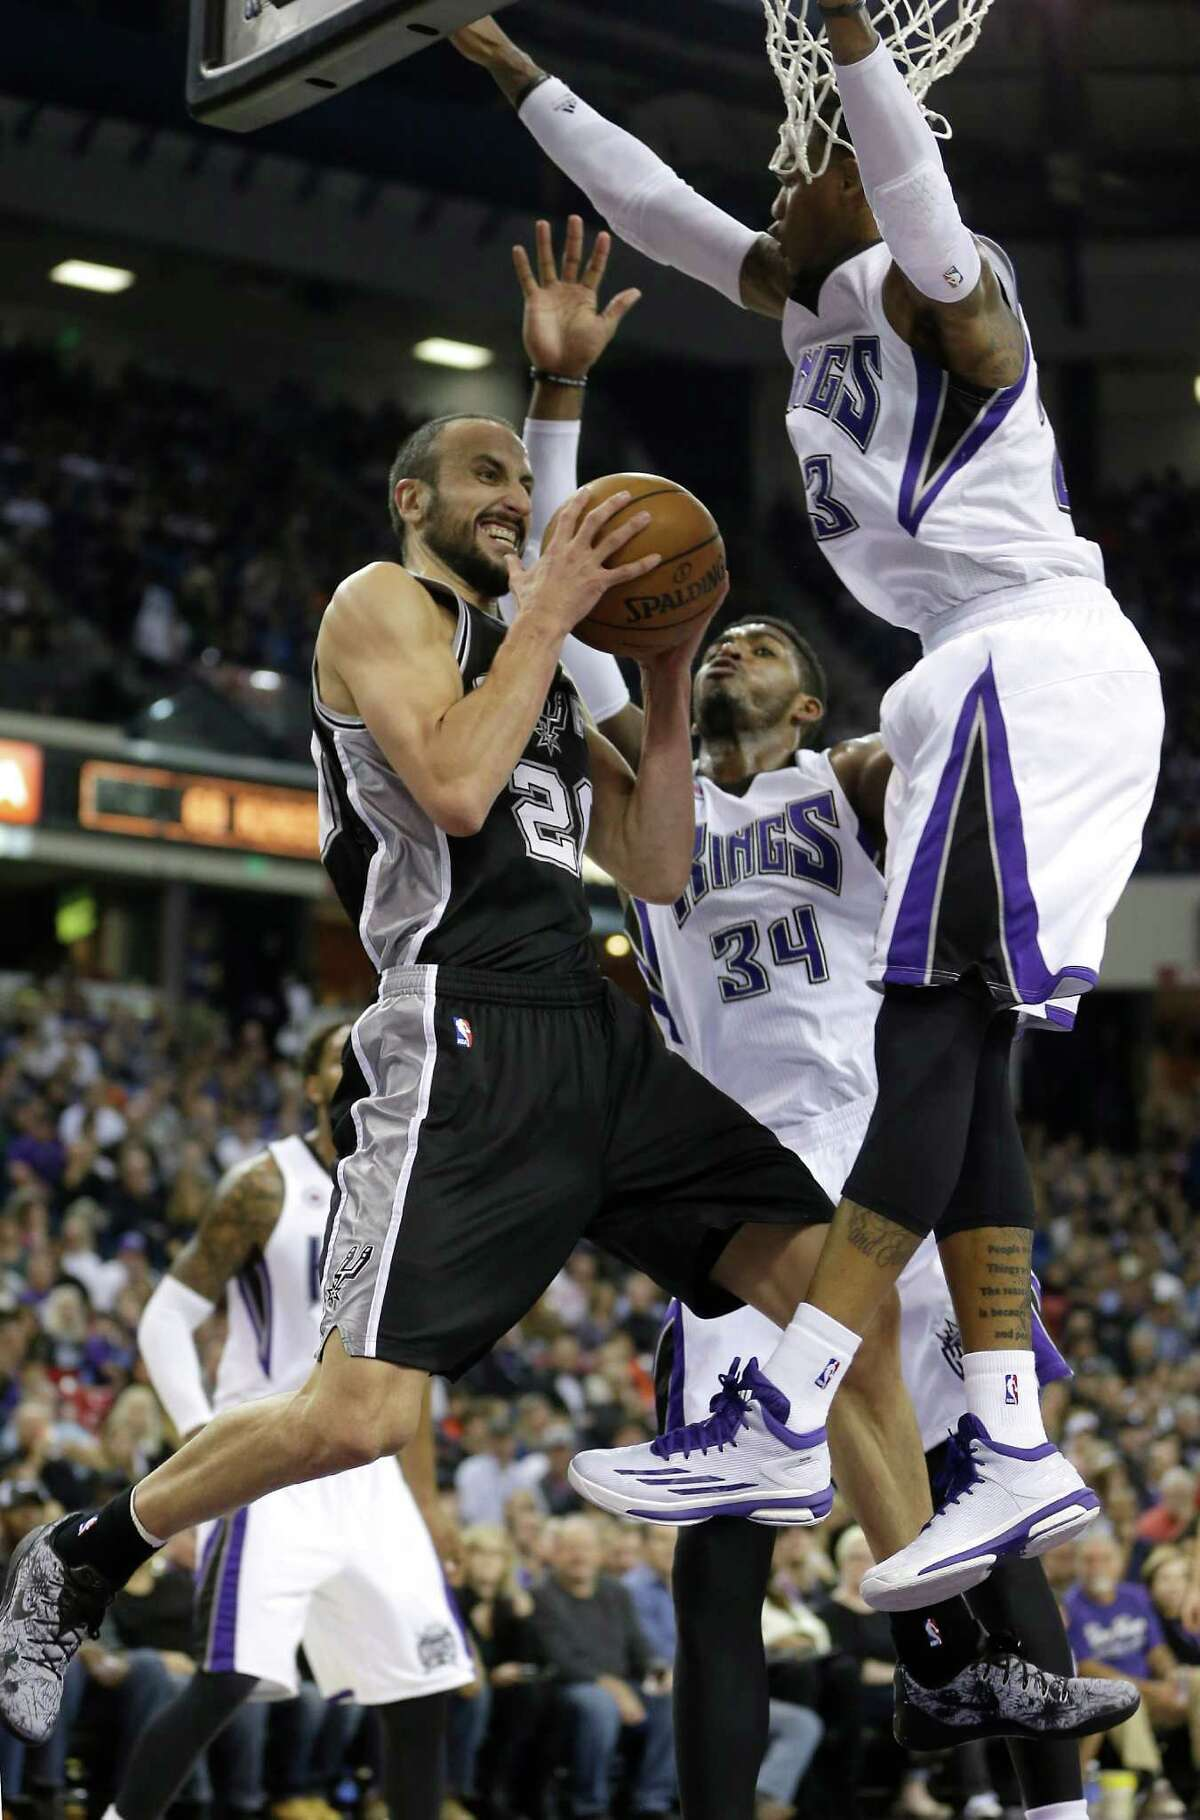 San Antonio Spurs guard Manu Ginobili, of Agrentina, left, is doubled teamed by Sacramento Kings Jason Thompson, center and Ben McLemore, during the first quarter of an NBA basketball game in Sacramento, Calif., Saturday, Nov. 15, 2014.